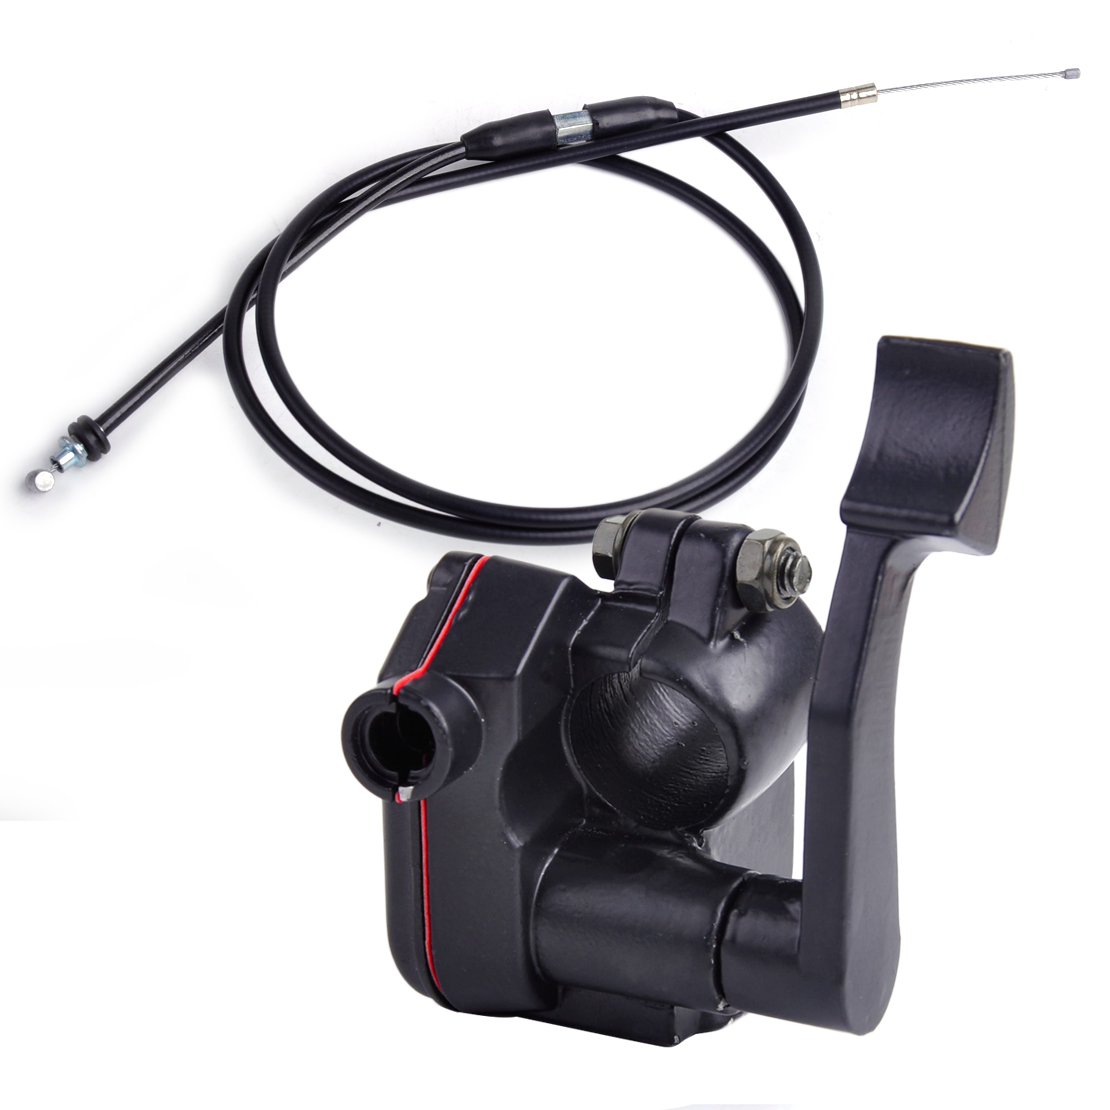 New Thumb Accelerator Lever Controller Throttle Wire Cable Assembly for ATV 50CC 110CC 150CC TaoTao Buyang Coolsport Lifan SUNL  цены